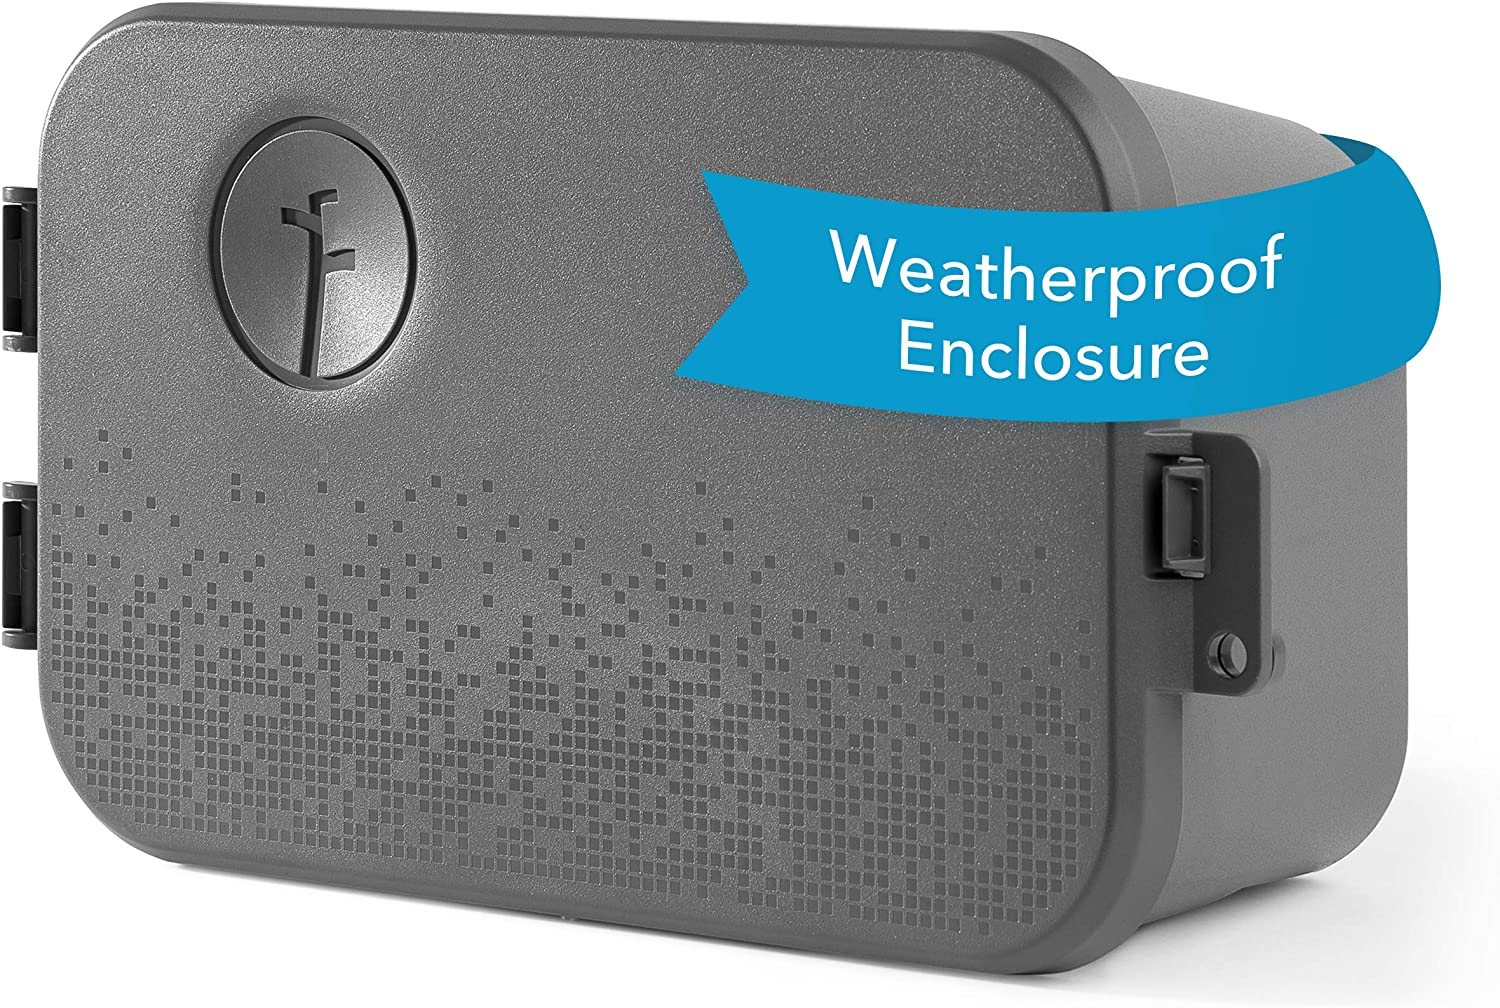 Selling Cheap mail order specialty store Rachio Smart Sprinkler Controller Enclosure Weatherproof Outdoor